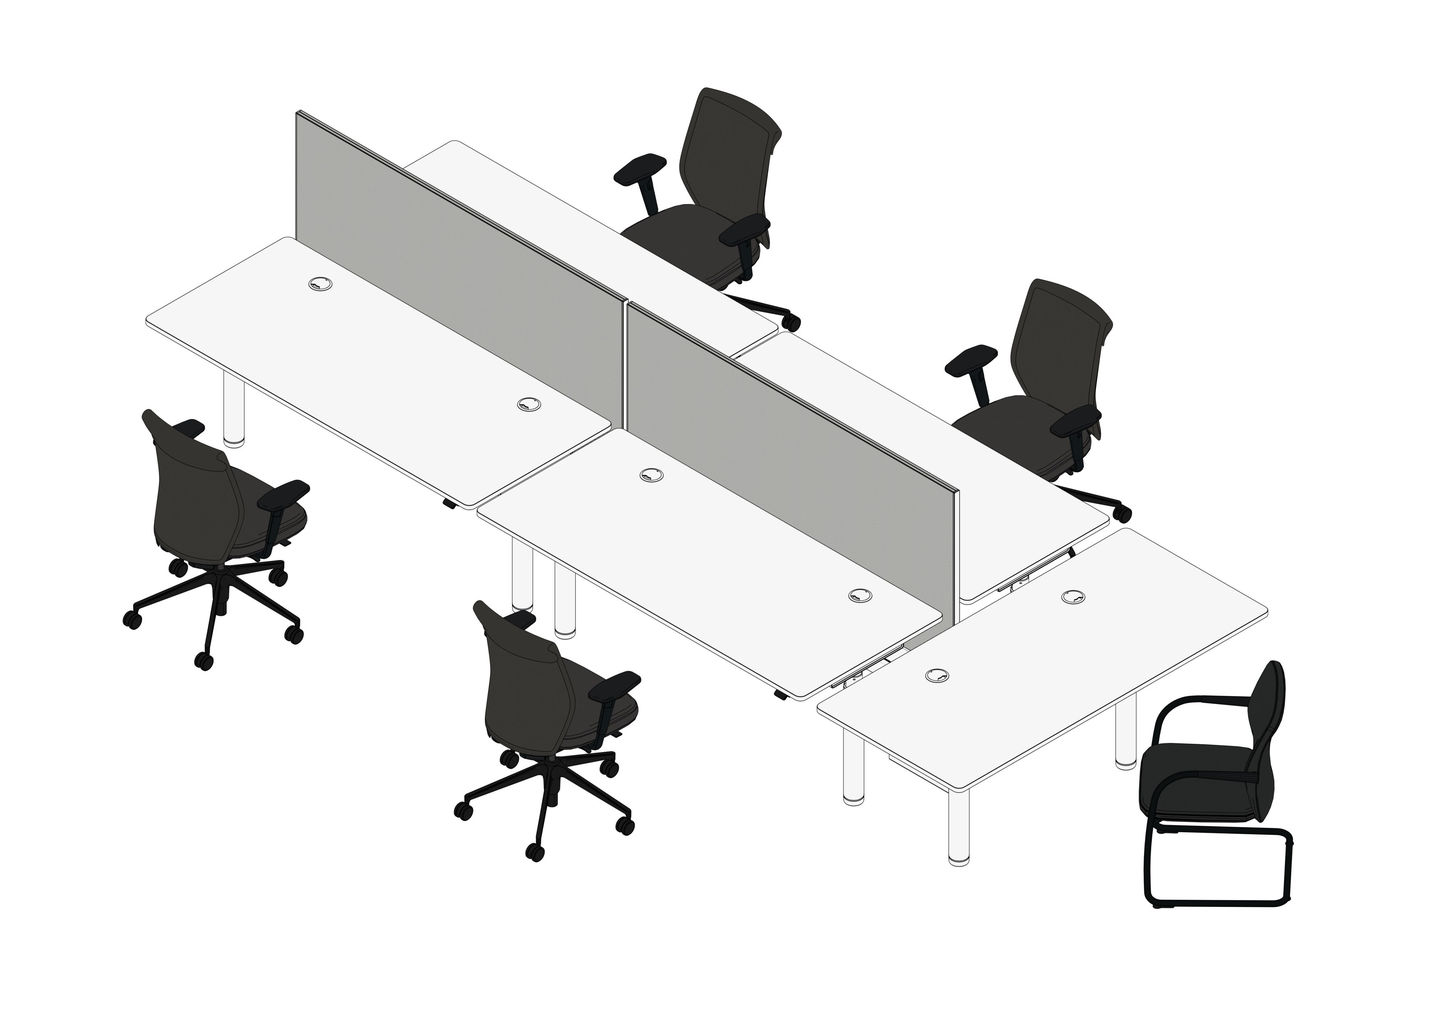 Tyde 2 Cluster 450 x 172 Additional Table, ID Cloud, ID Visitor Soft